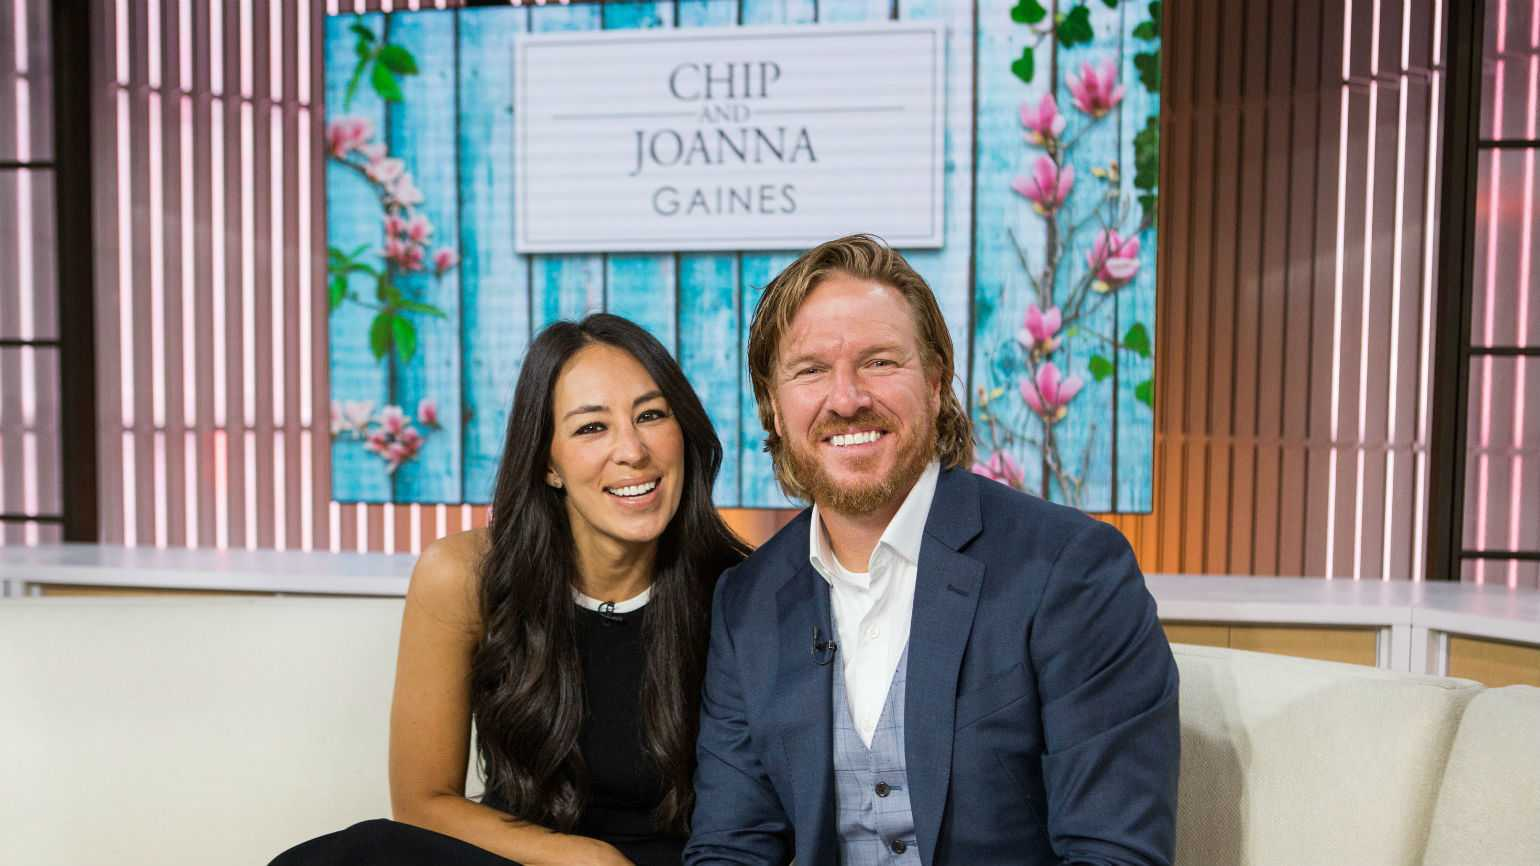 Chip Gaines and his wife, Joanna.